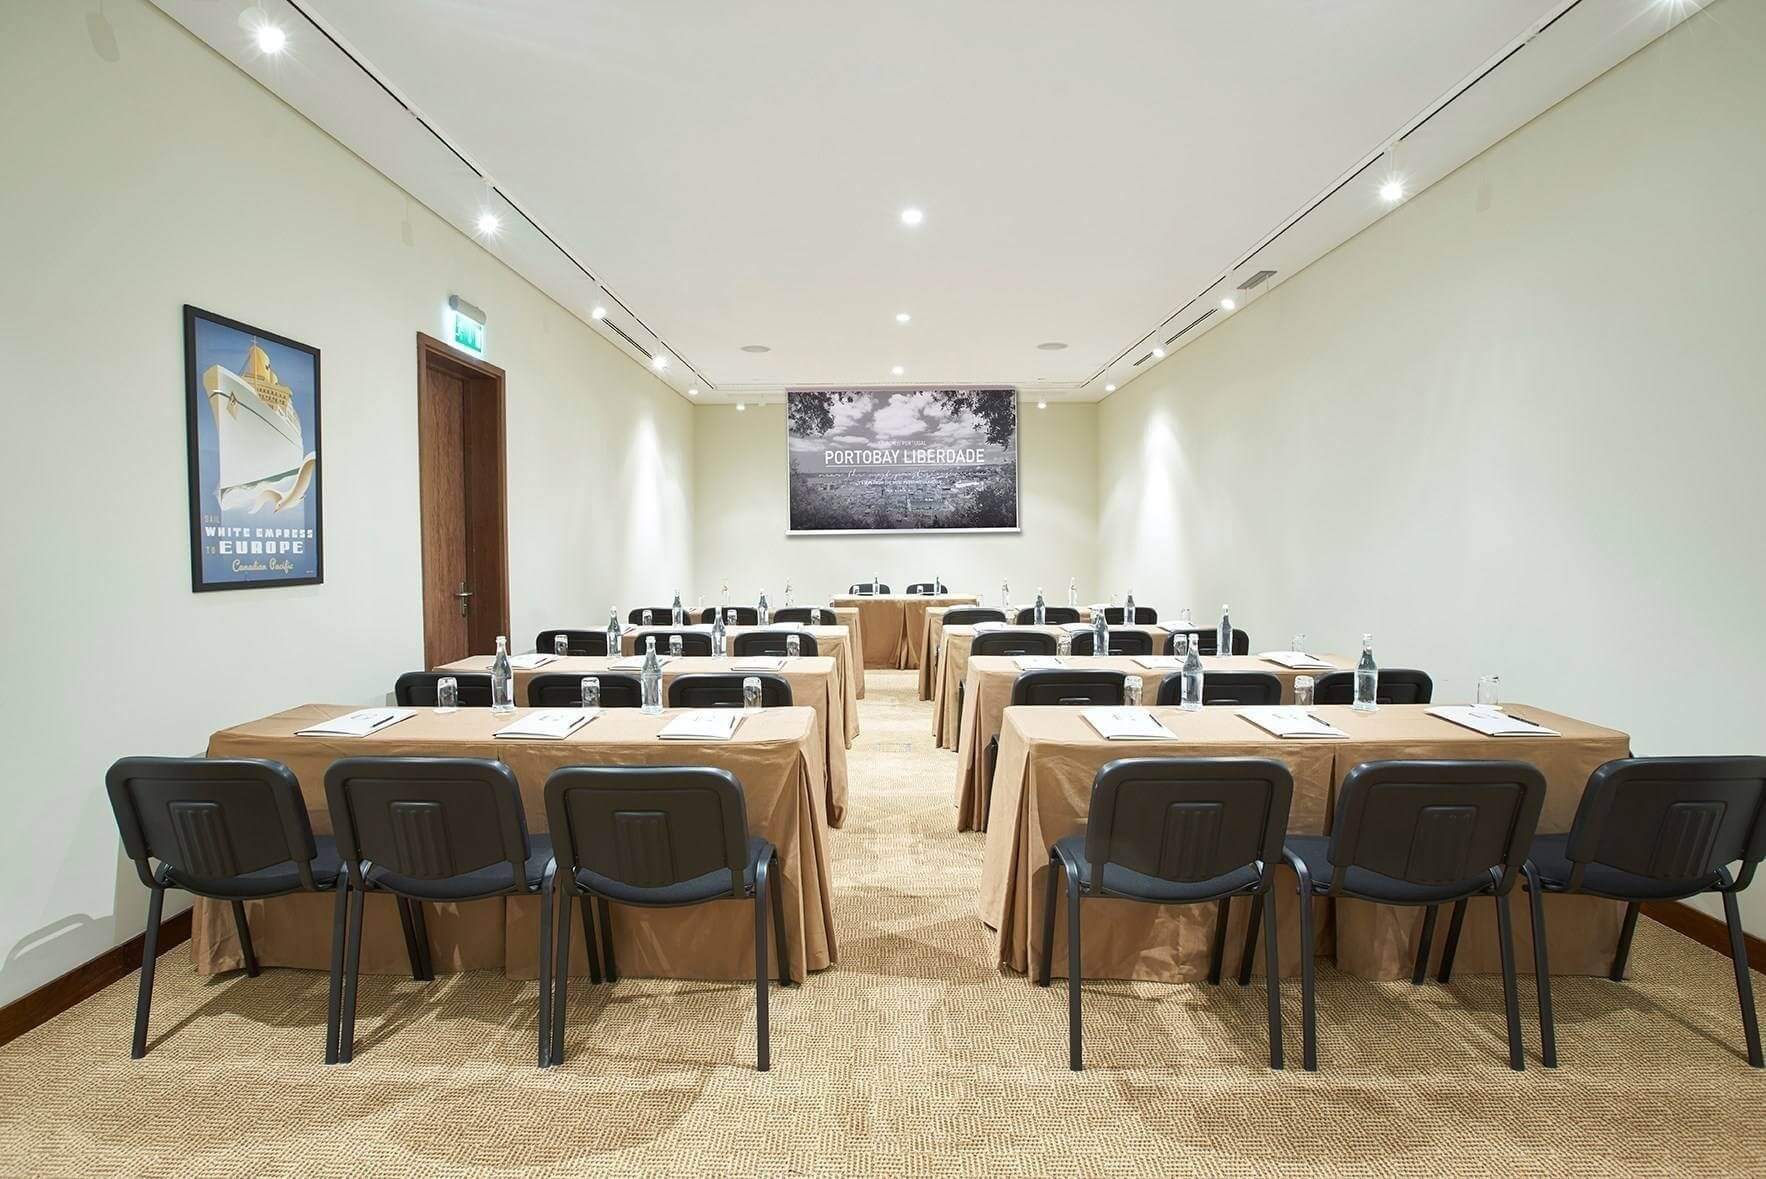 Hotel PortoBay Liberdade - Lisbon - Meeting Rooms